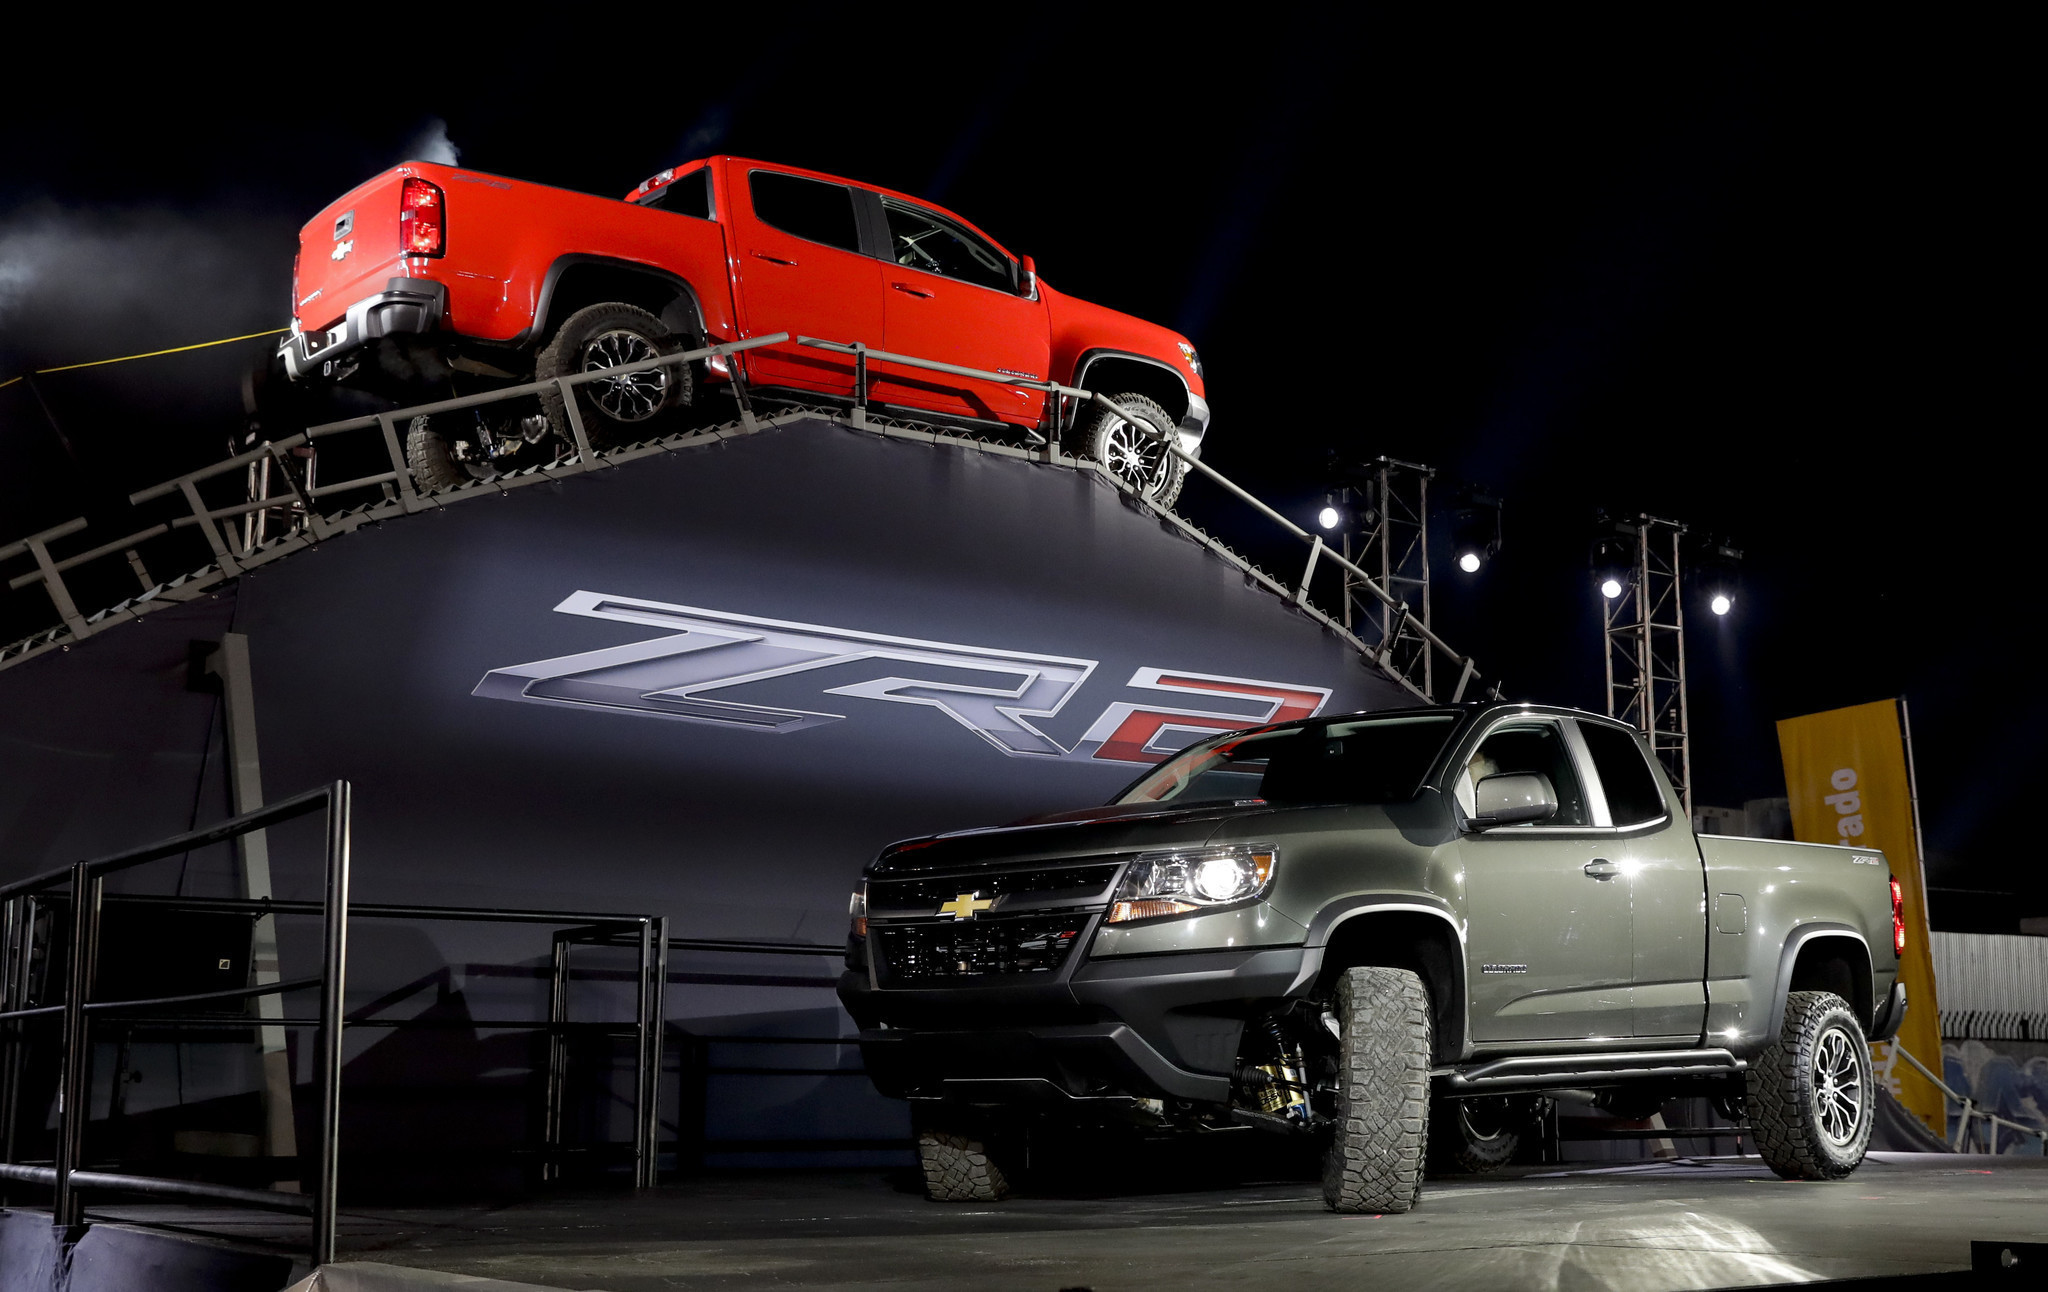 Chevy Introduces The New Colorado ZR2, An Off-road-ready